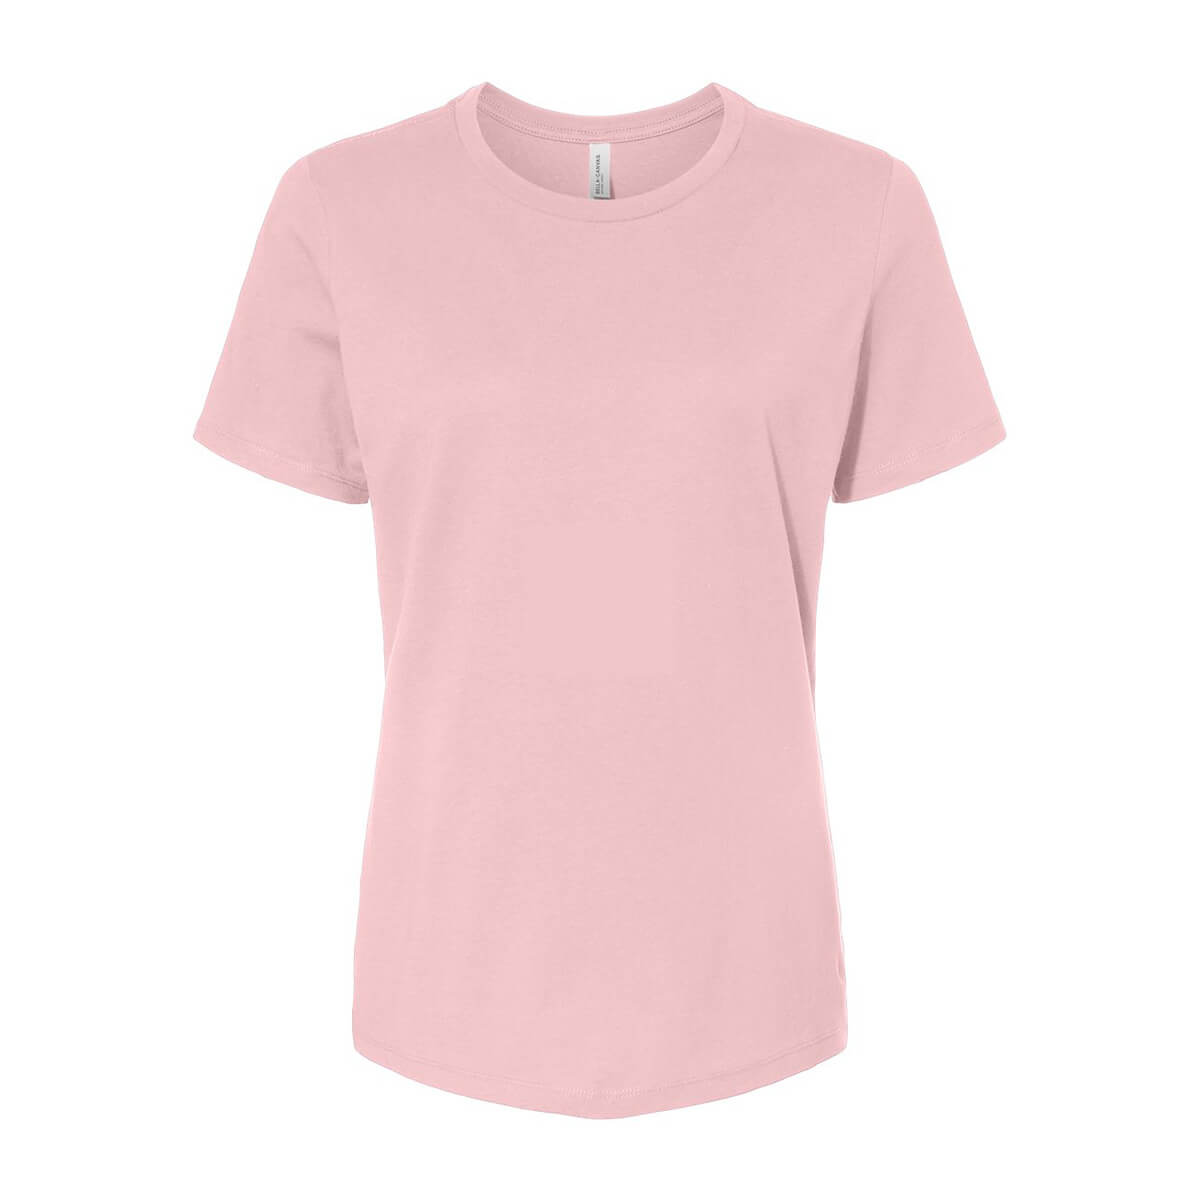 6400-pink-front